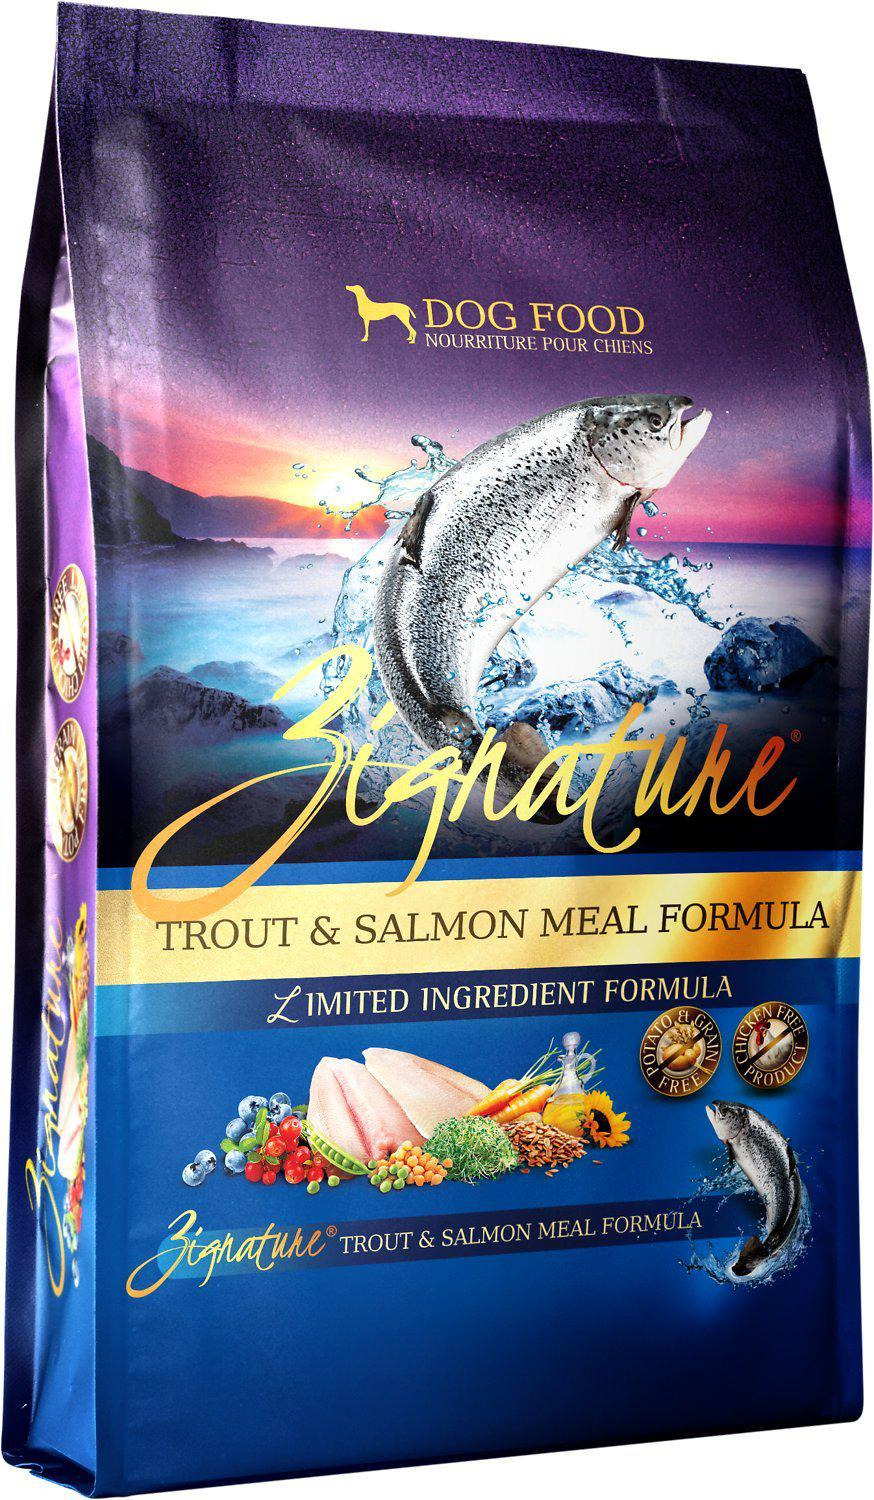 Zignature Trout & Salmon Meal Limited Ingredient Formula Grain-Free Dry Dog Food-Le Pup Pet Supplies and Grooming